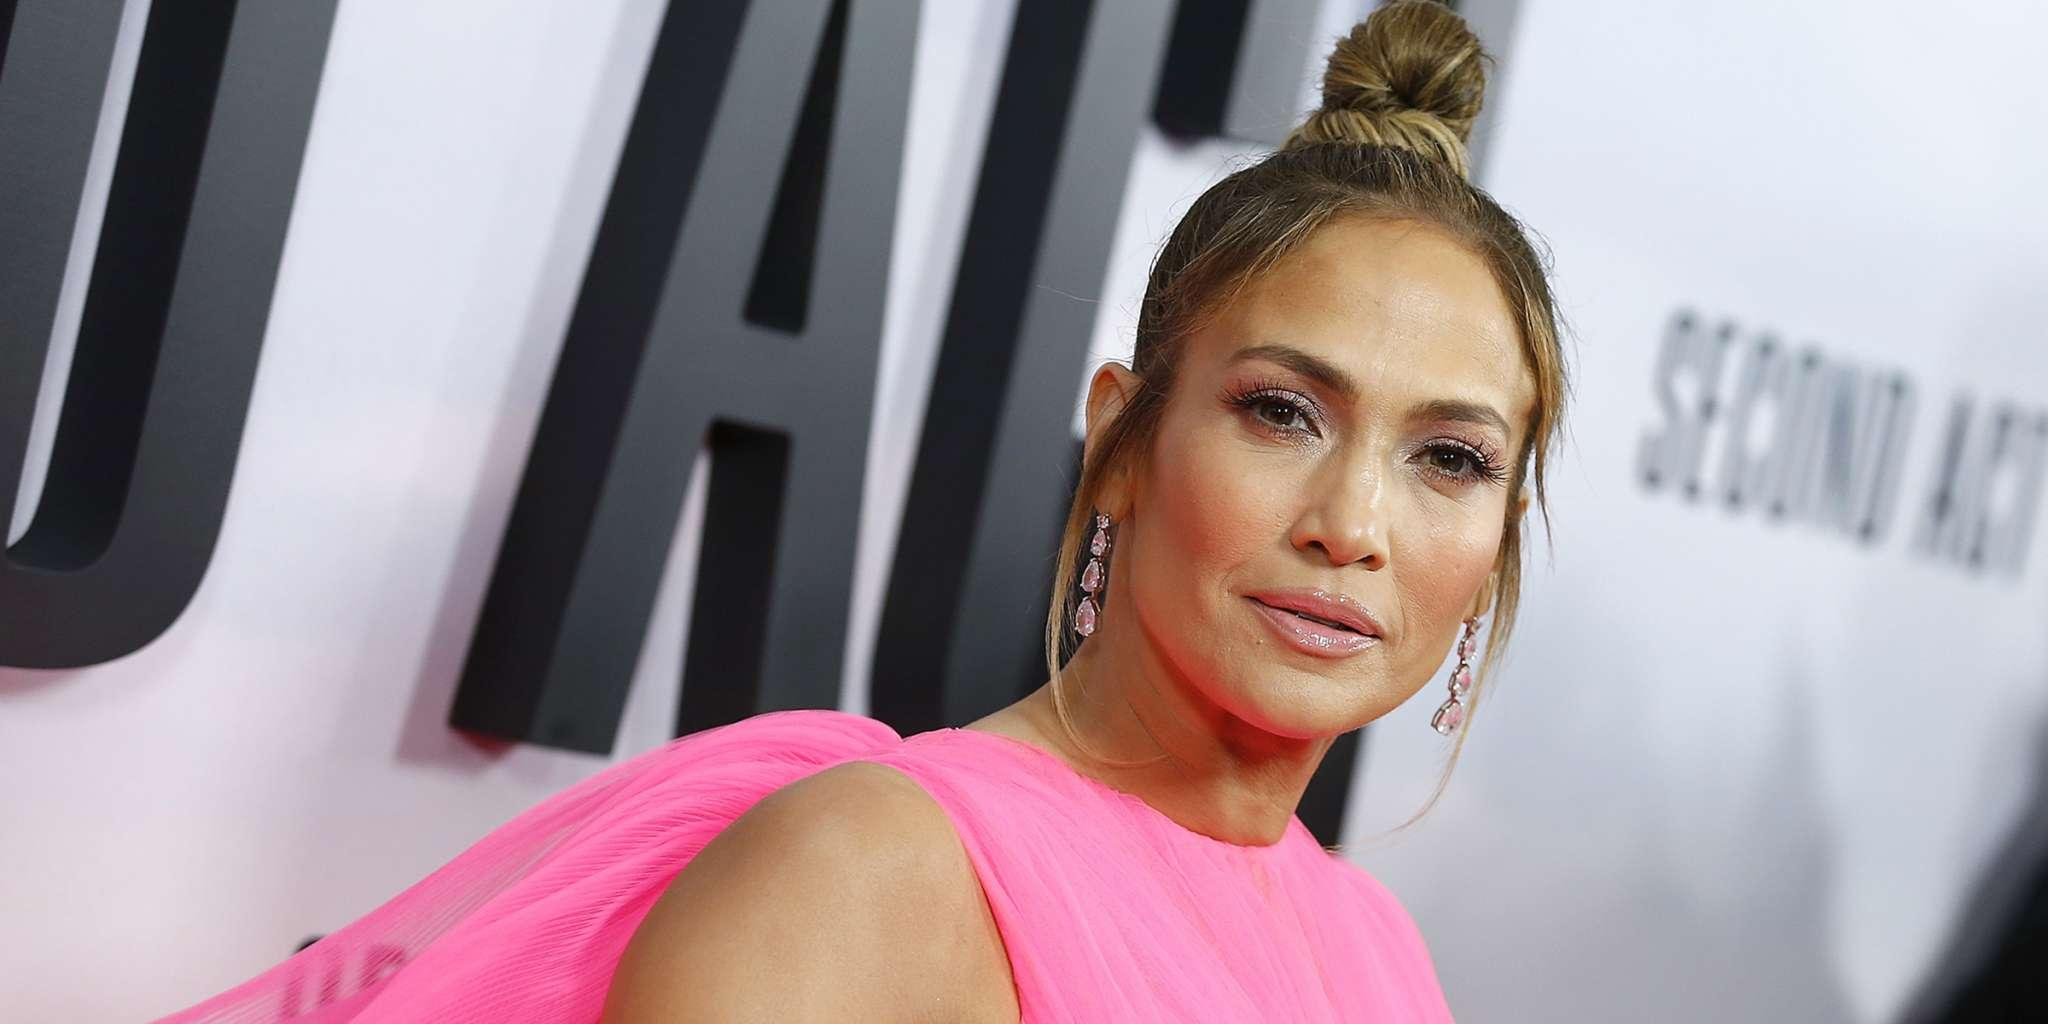 Jennifer Lopez - Here's Who Nicknamed Her J.Lo. First 2 Decades Ago!